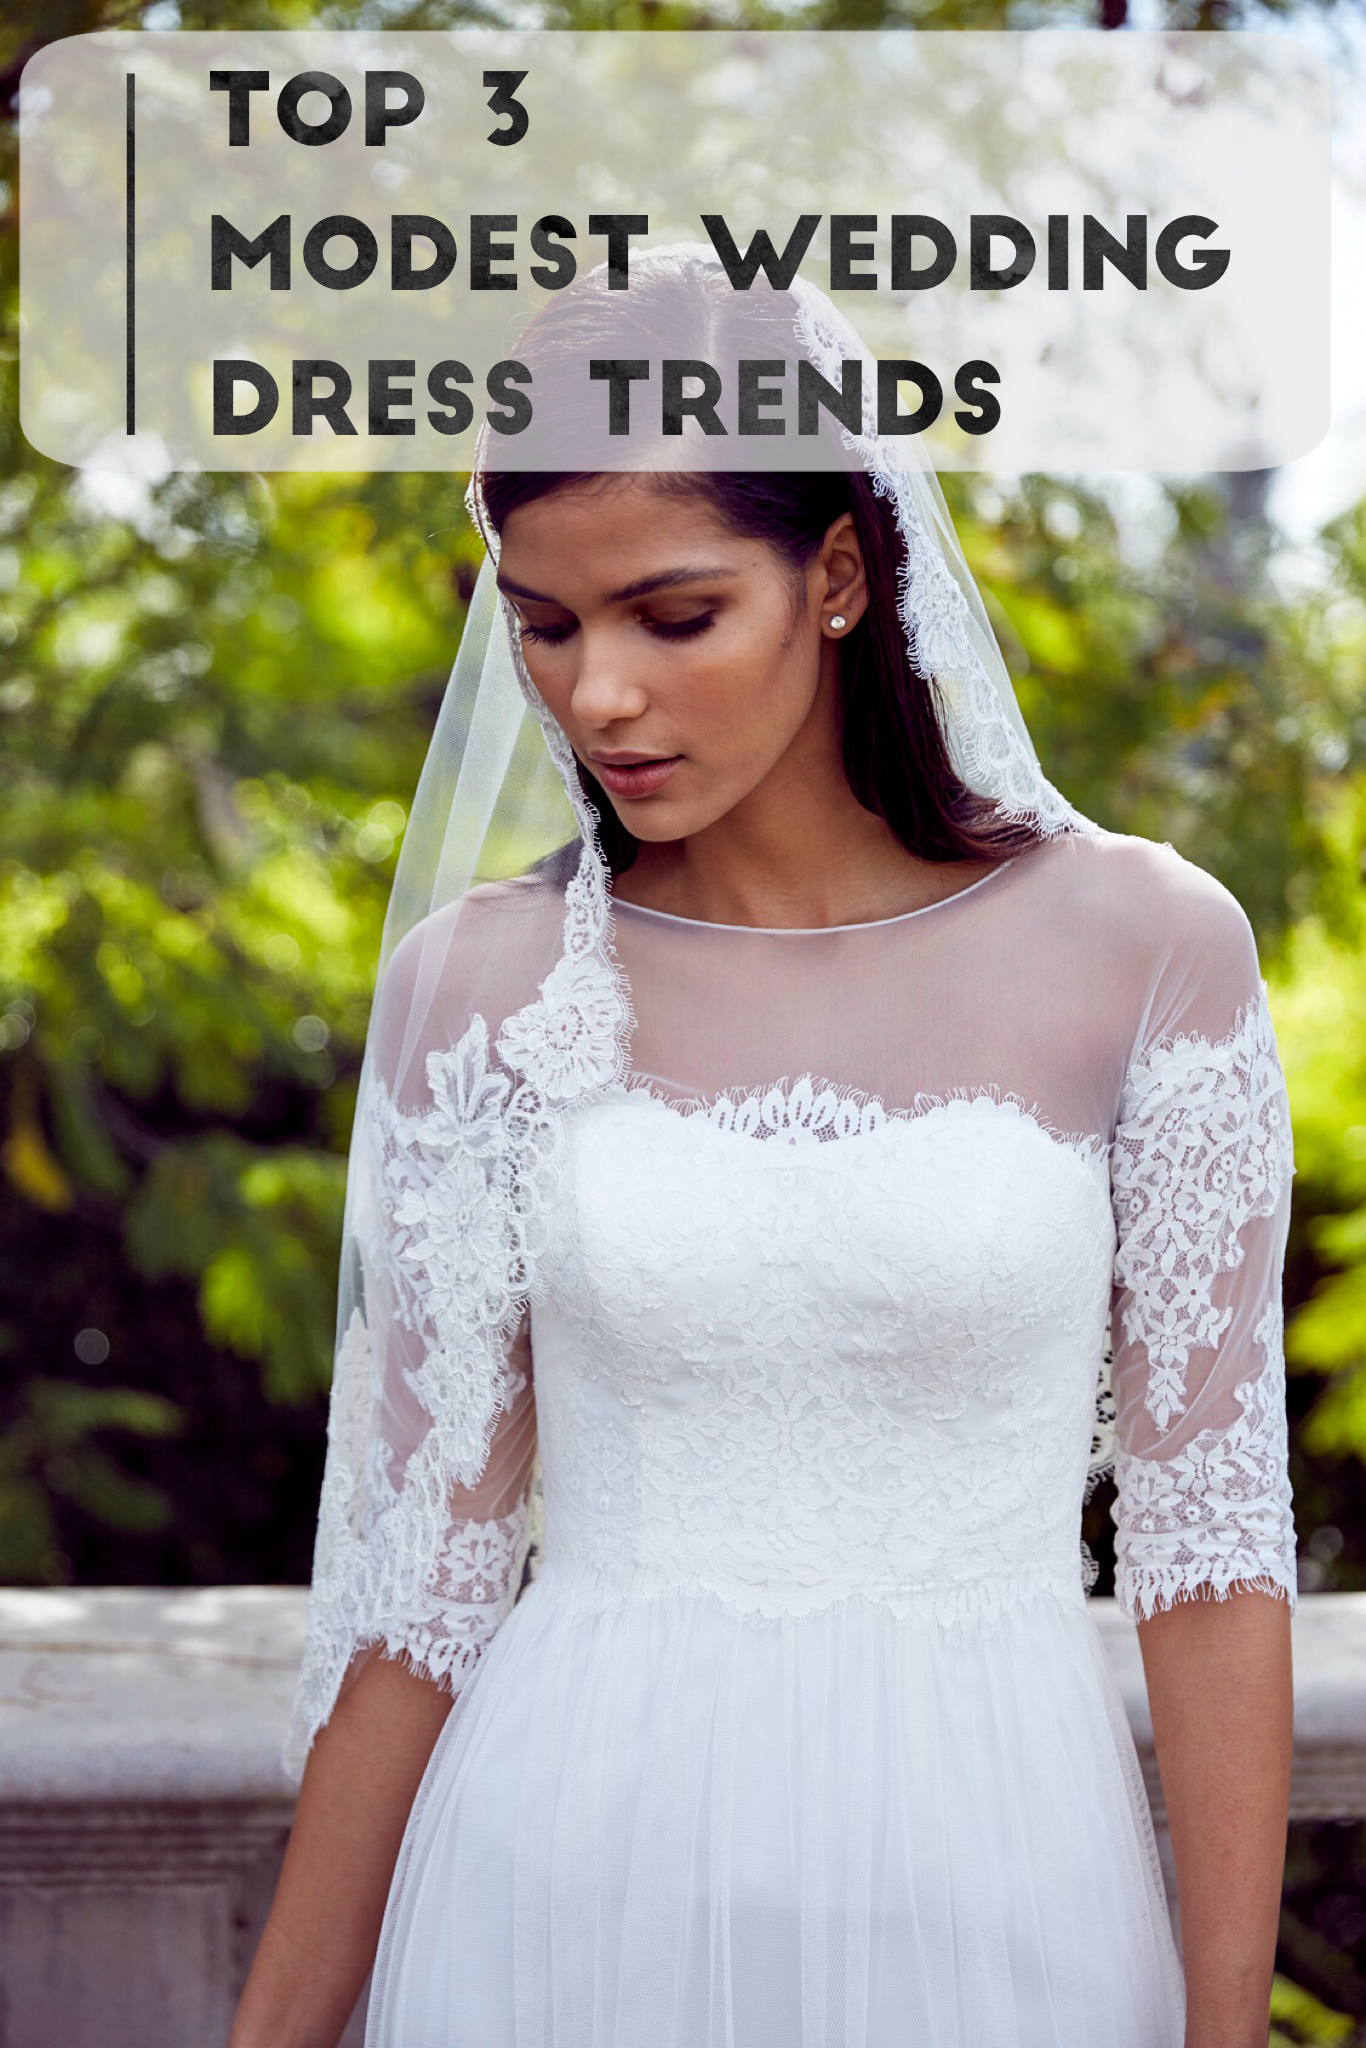 Top 3 modest wedding dress trends ft. David's Bridal - DowntownDemure.com